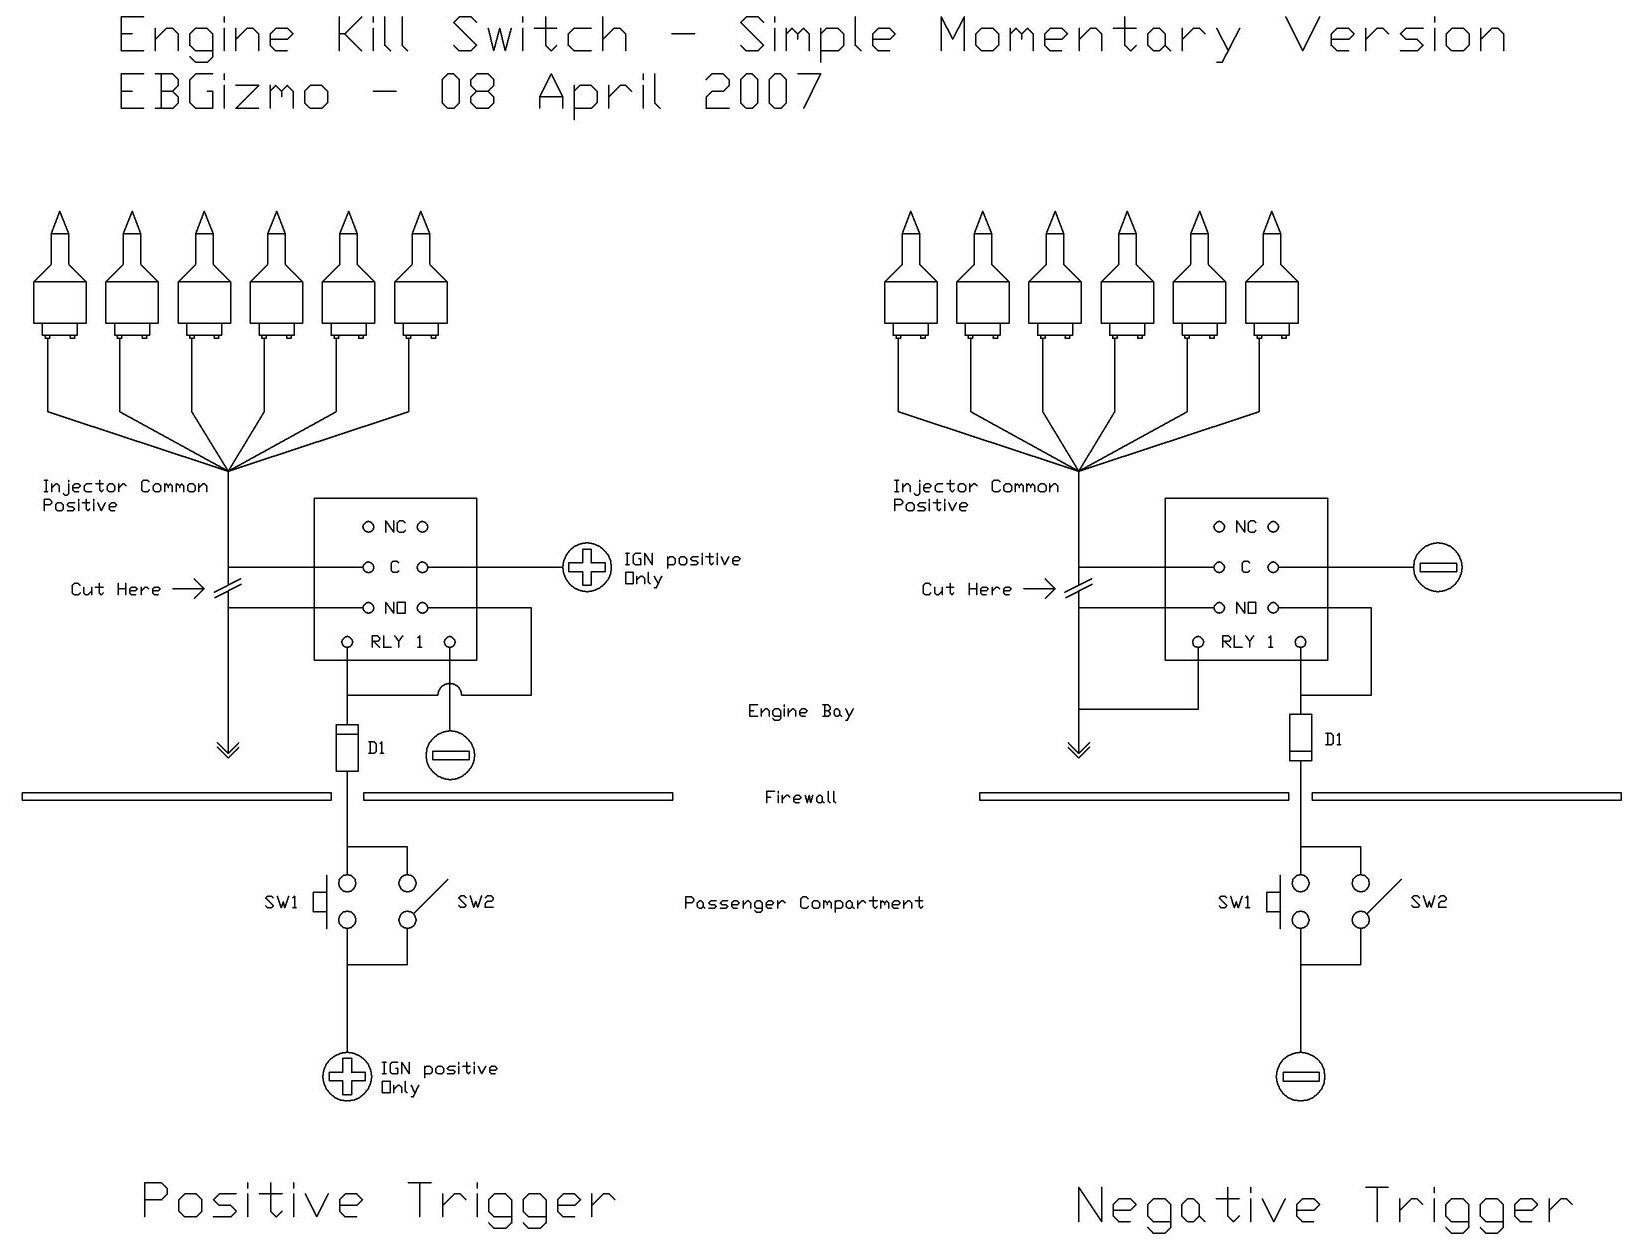 Kill Switch Simple Momentary Print Layout (4)-000001.jpg